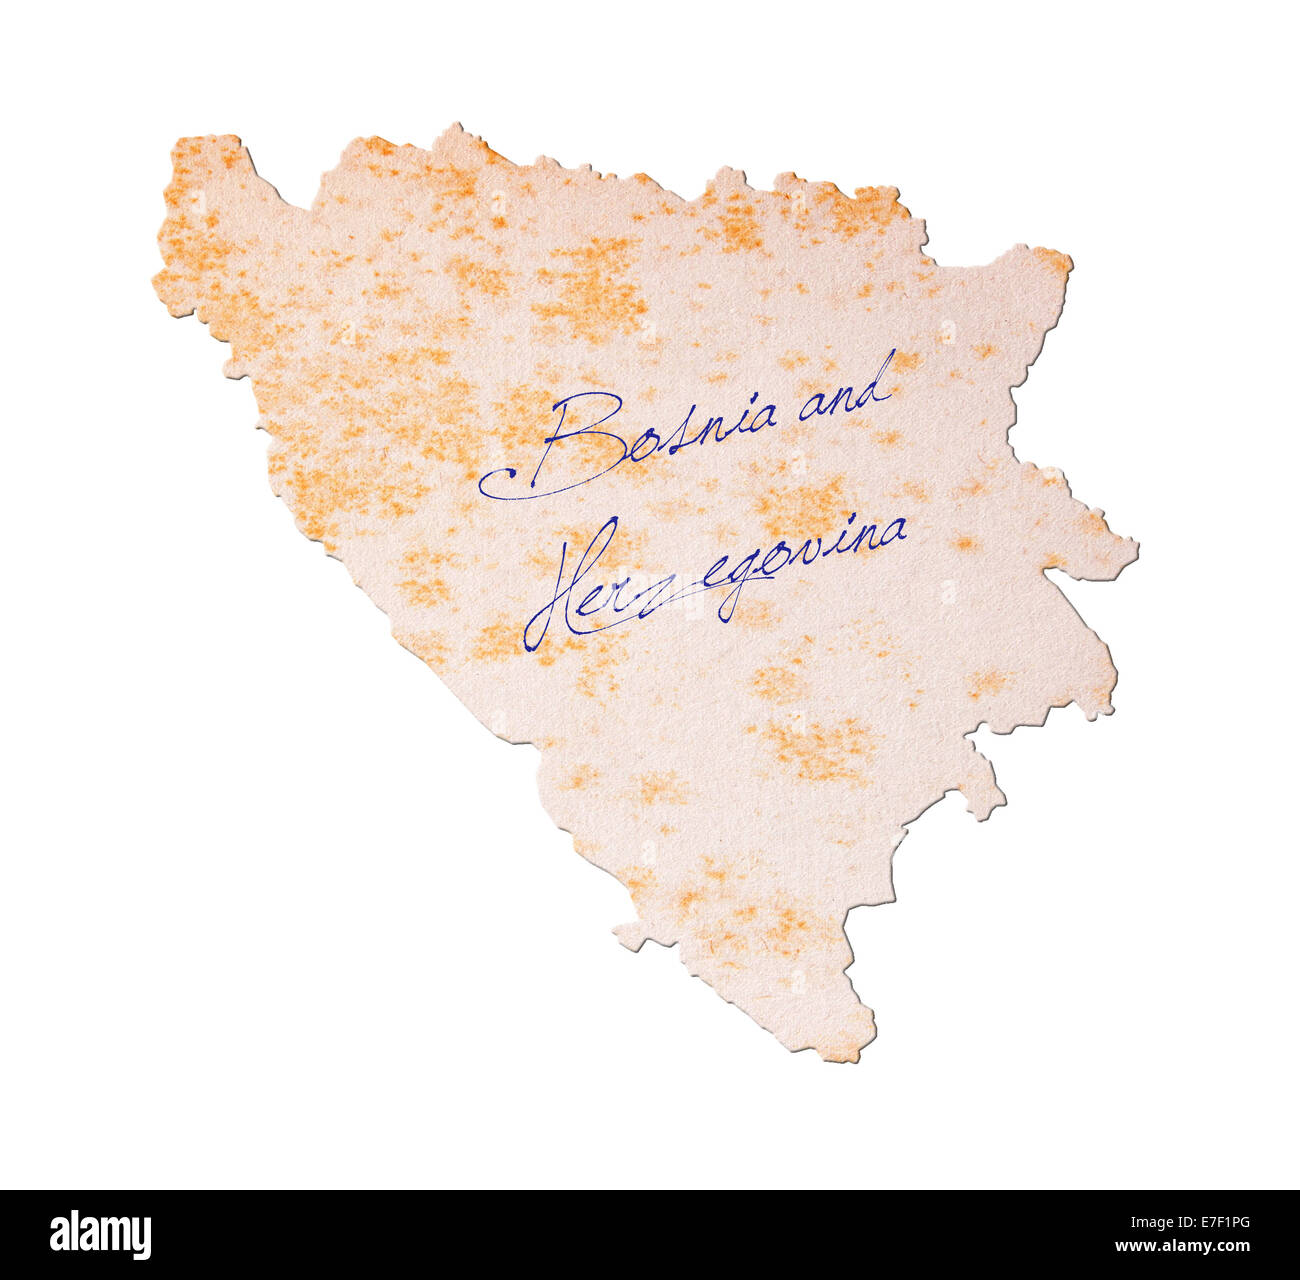 Old paper with handwriting, blue ink - Bosnia and Herzegovina - Stock Image